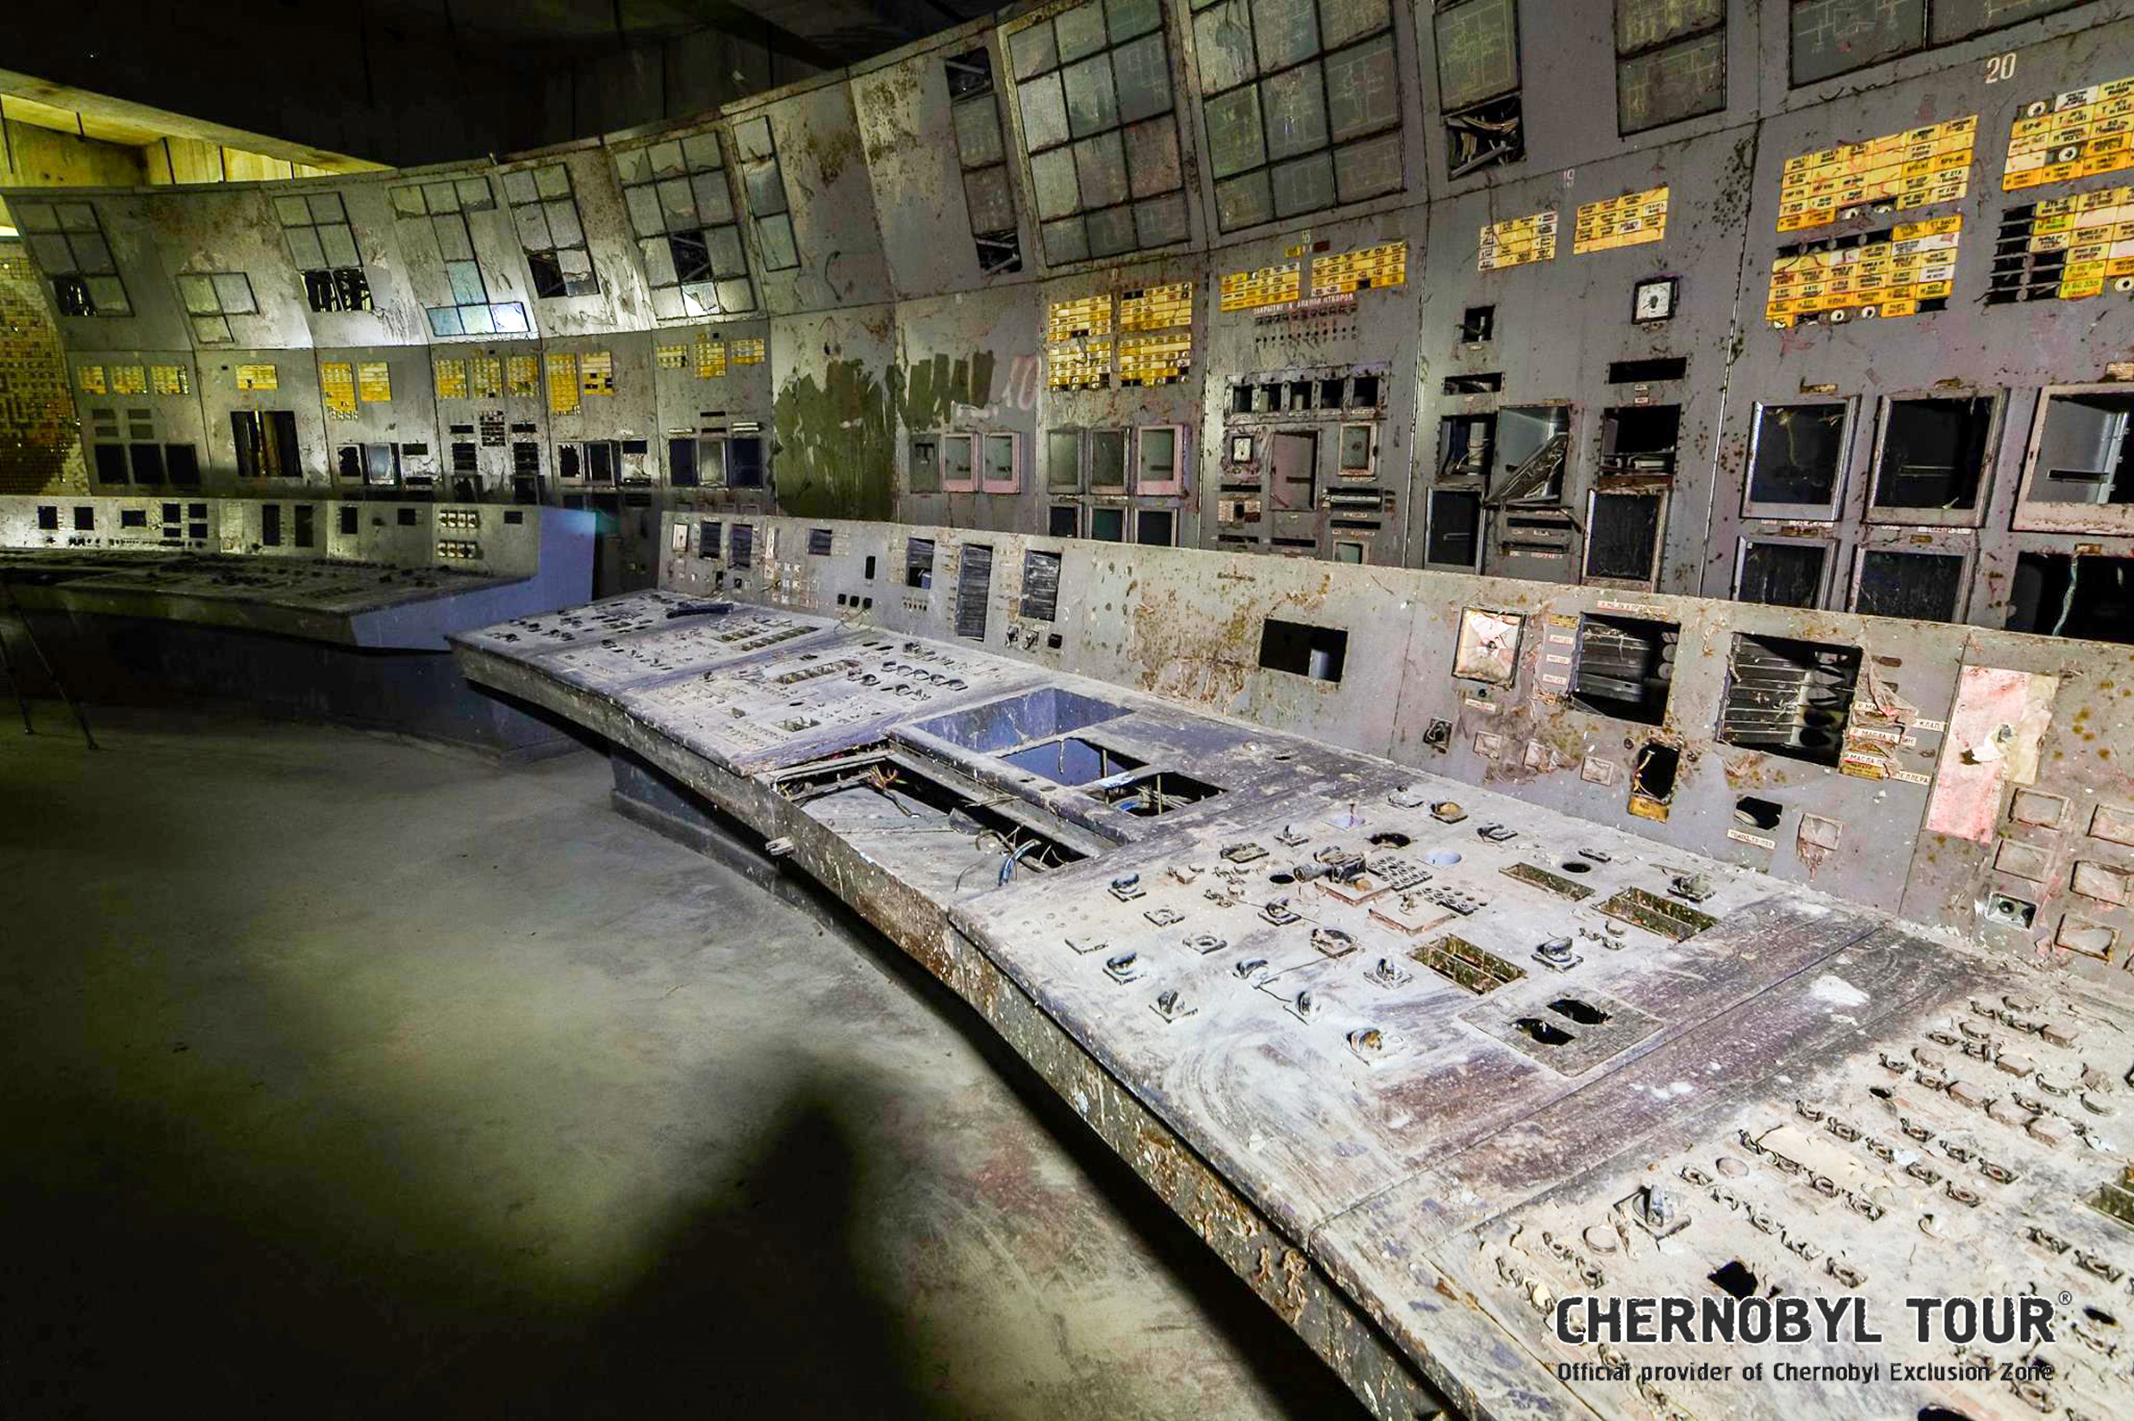 The control room of Chernobyl's highly radioactive Reactor No. 4 is now open to the public ©Chernobyl Tour